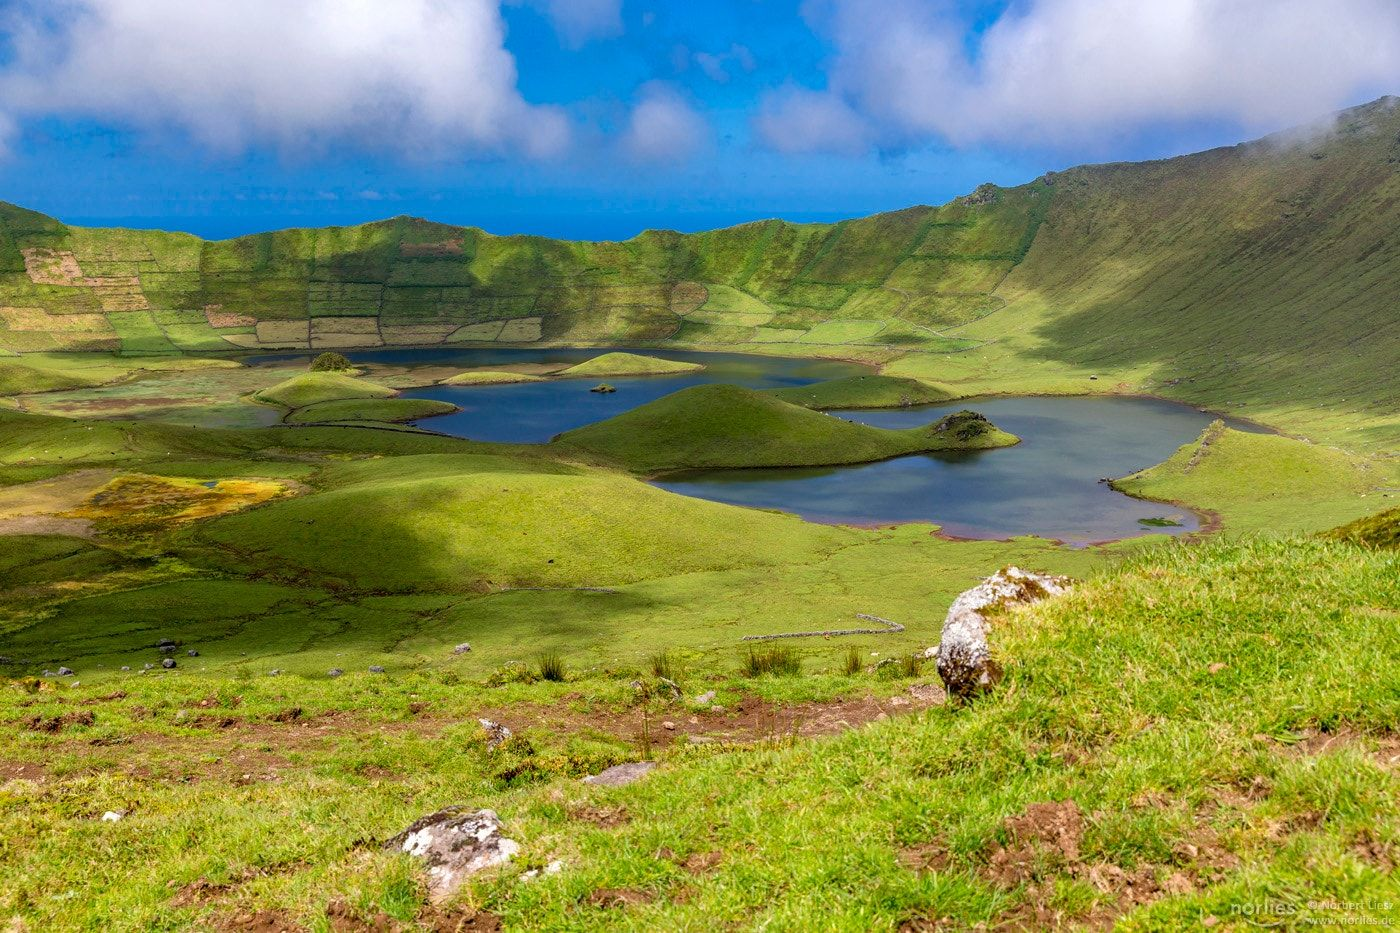 """Crater at Corvo - A dream to be here surrounded by green grass, water and kissed by the sun.  Found paradise this year on my trip to Corvo/Azores. Thanks Carlos Mendes!  https://500px.com/carlosmendes4  More pictures on my facebook Account: <a href=""""http://www.facebook.com/norlies1"""">Facebook</a> ."""